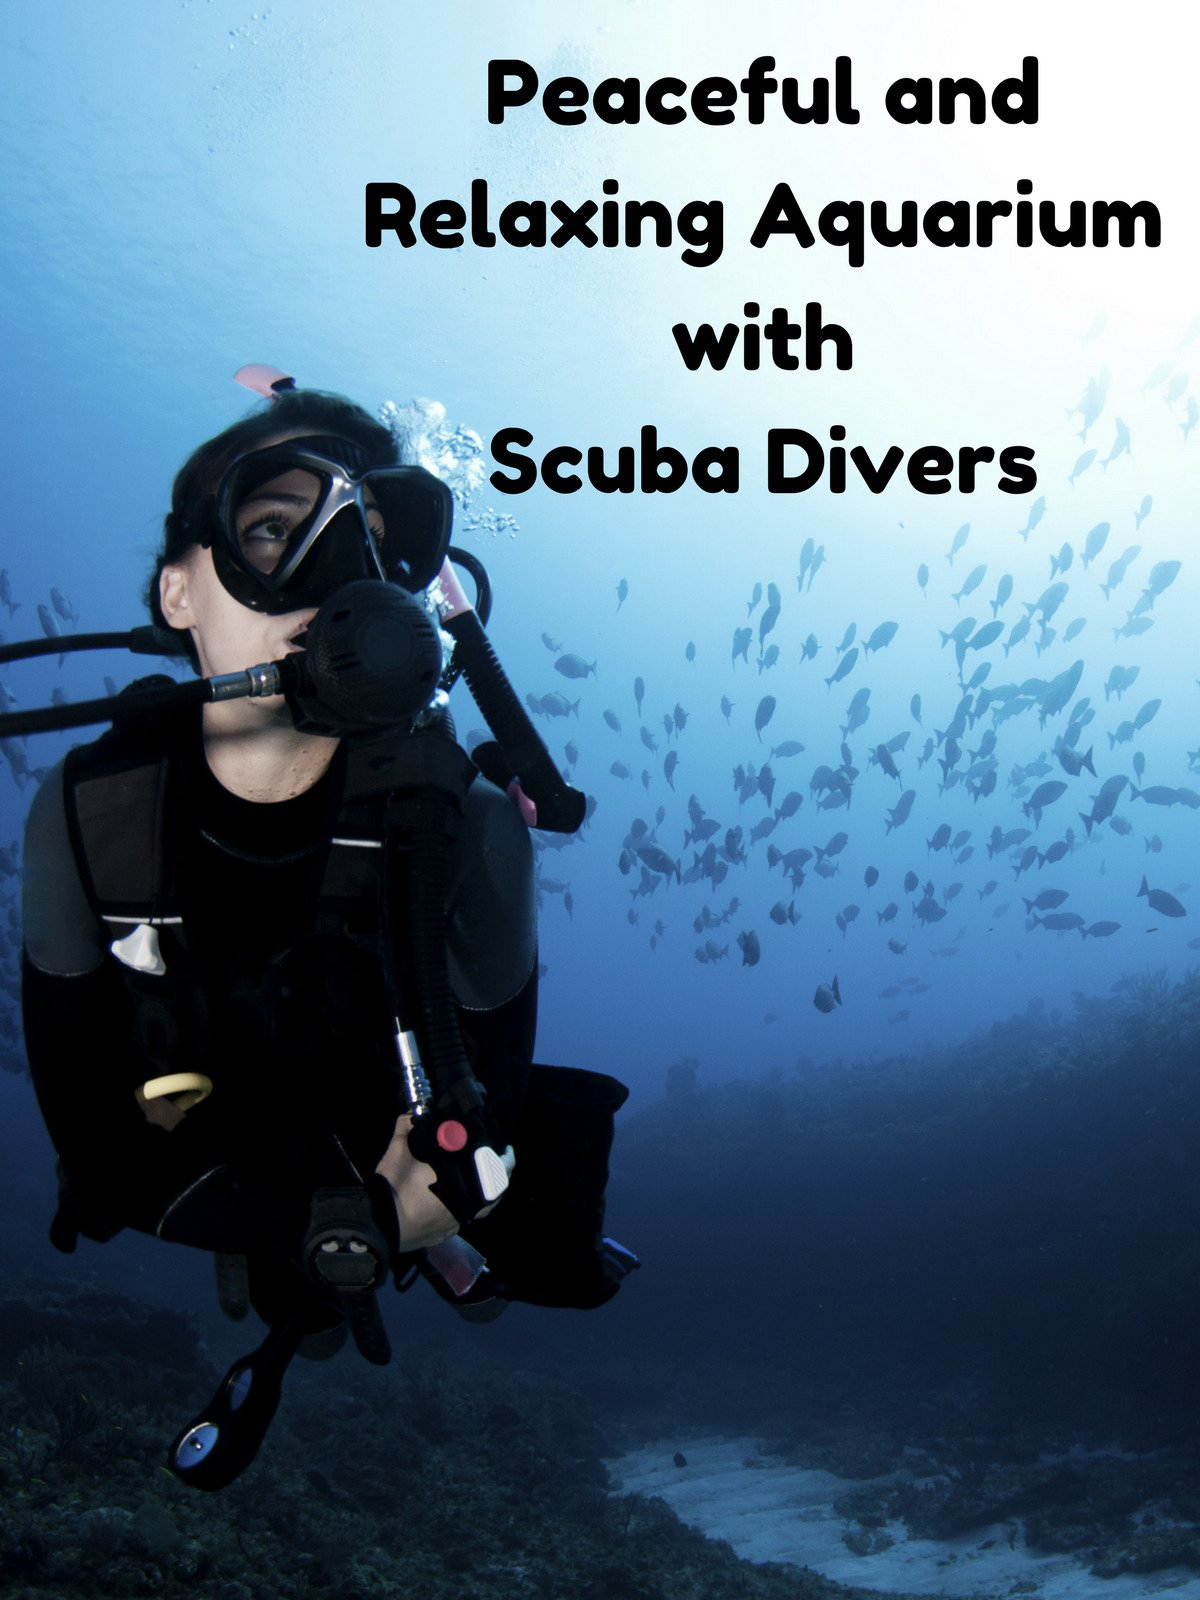 Peaceful and Relaxing Aquarium with Scuba Divers